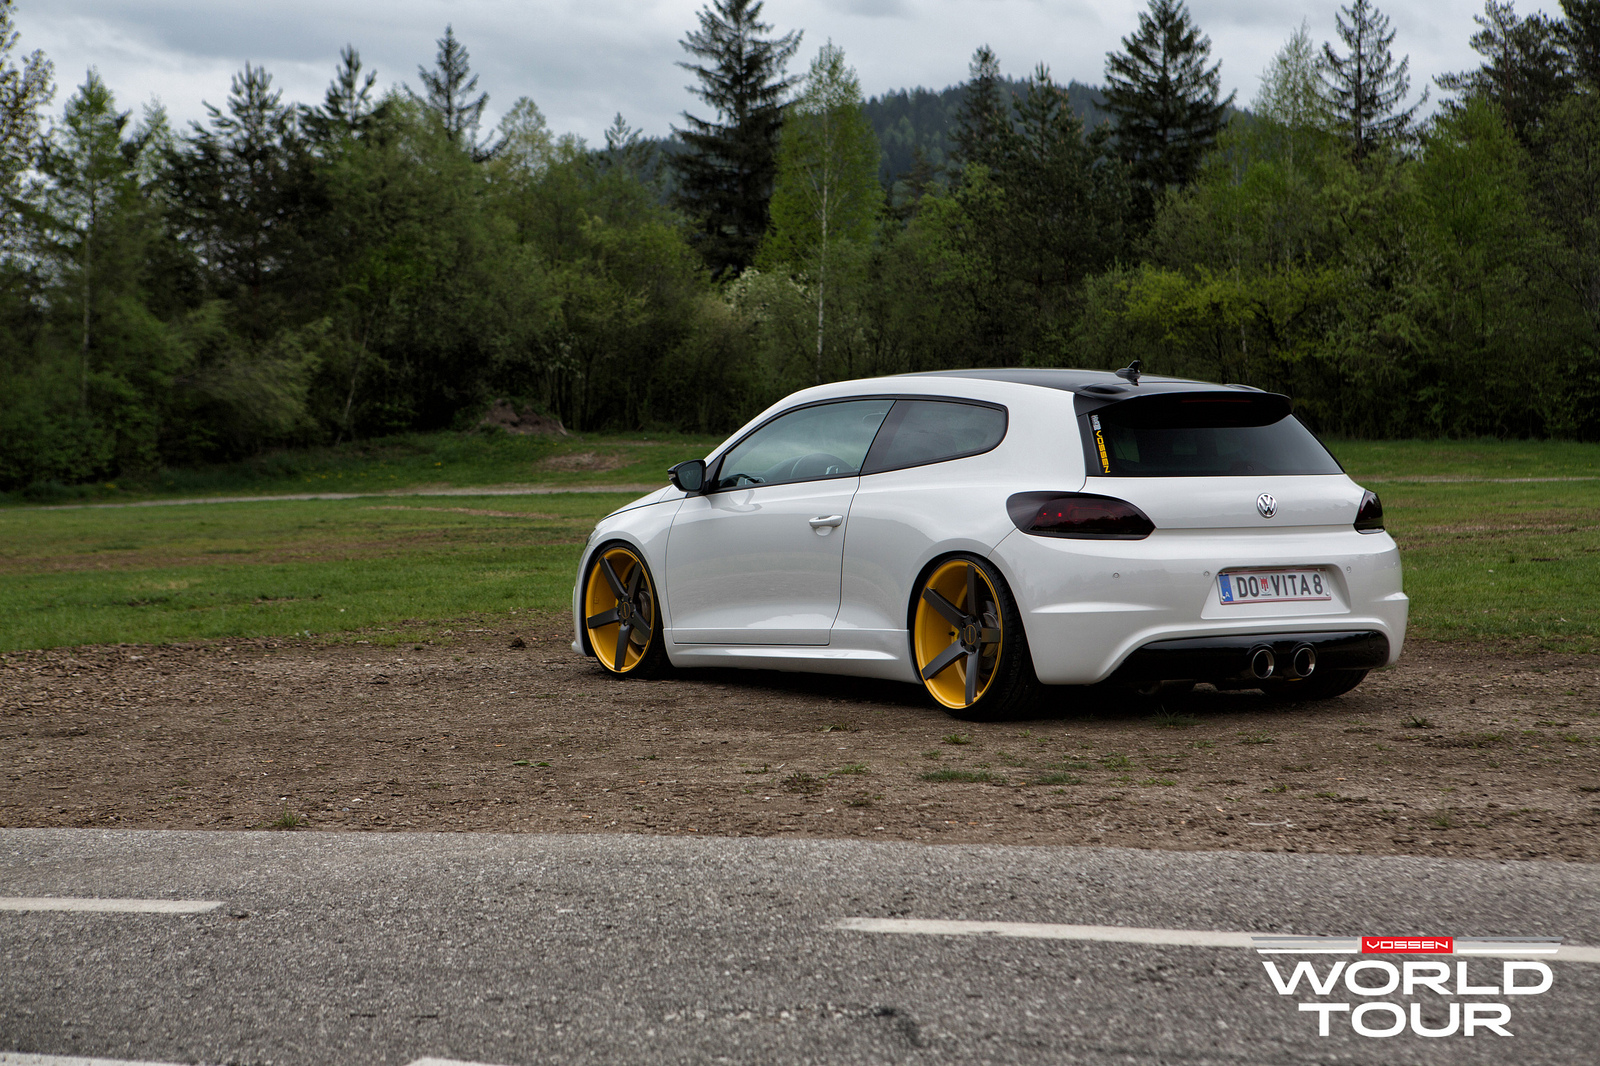 VW Scirocco R Slammed on Vossen Wheels - autoevolution